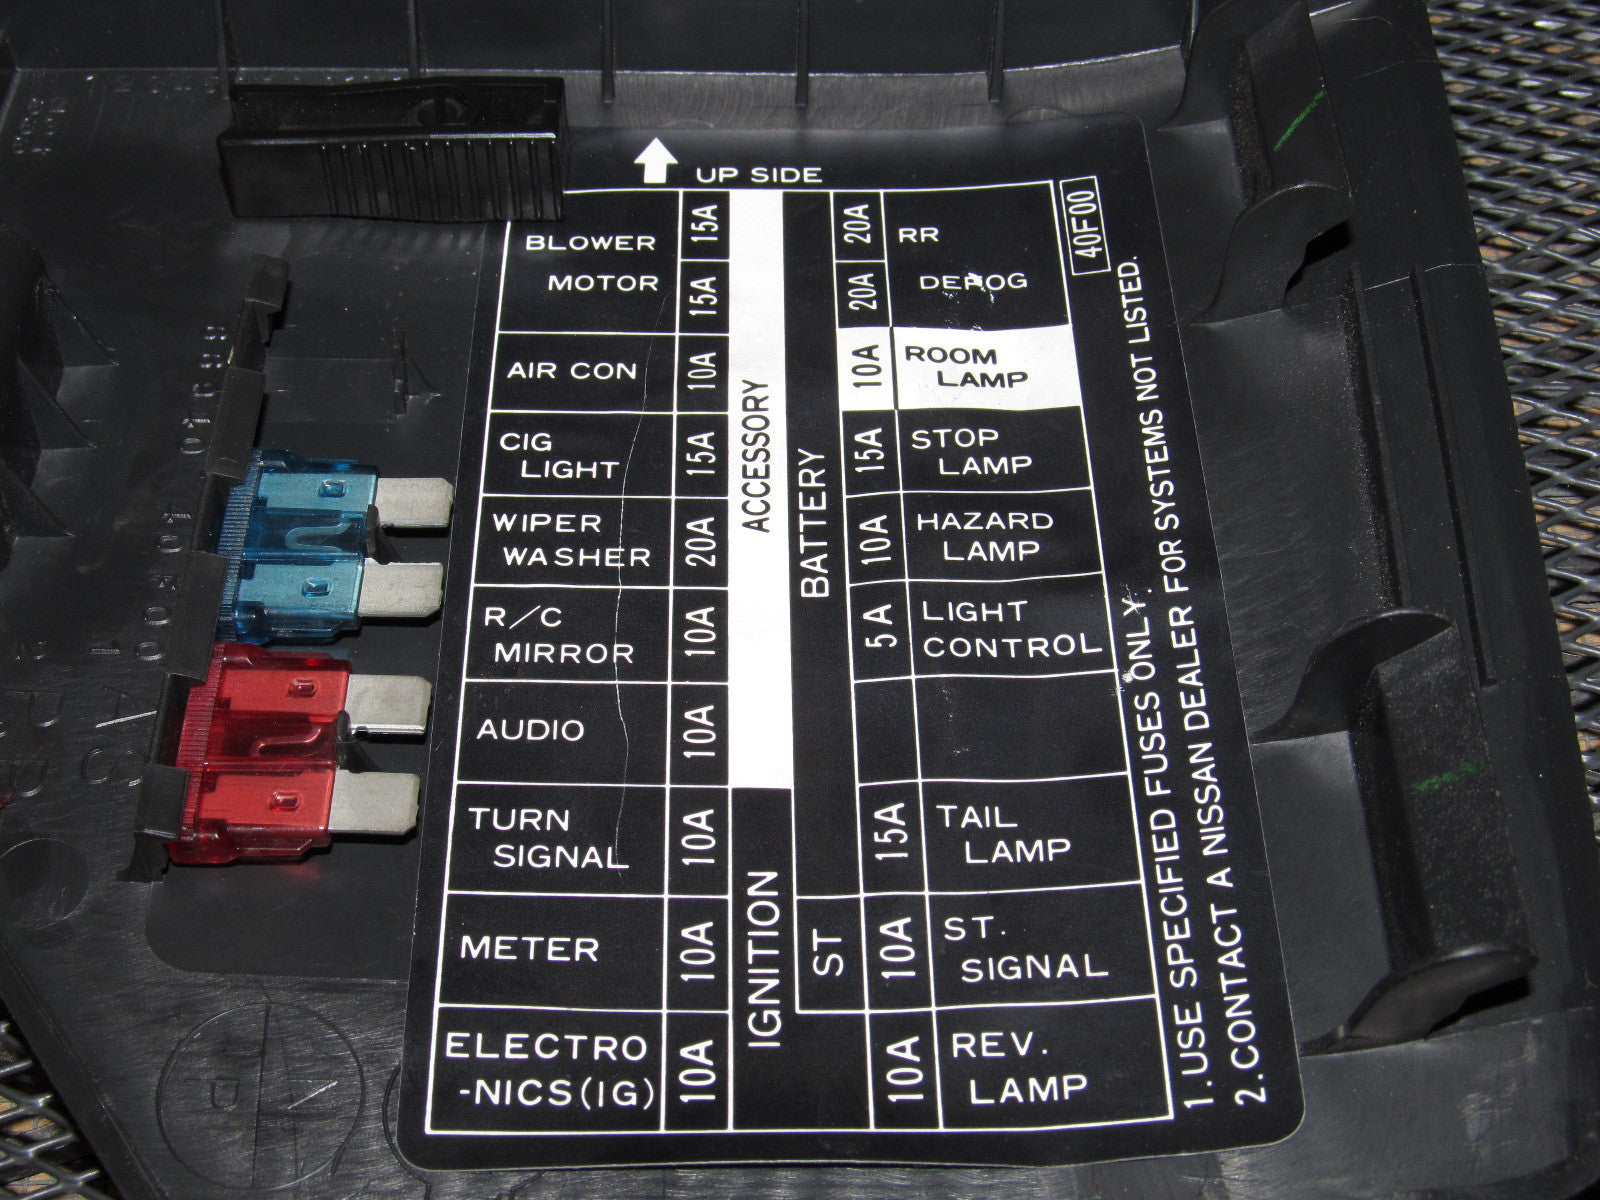 1995 Nissan 240sx Interior Fuse Box Diagram